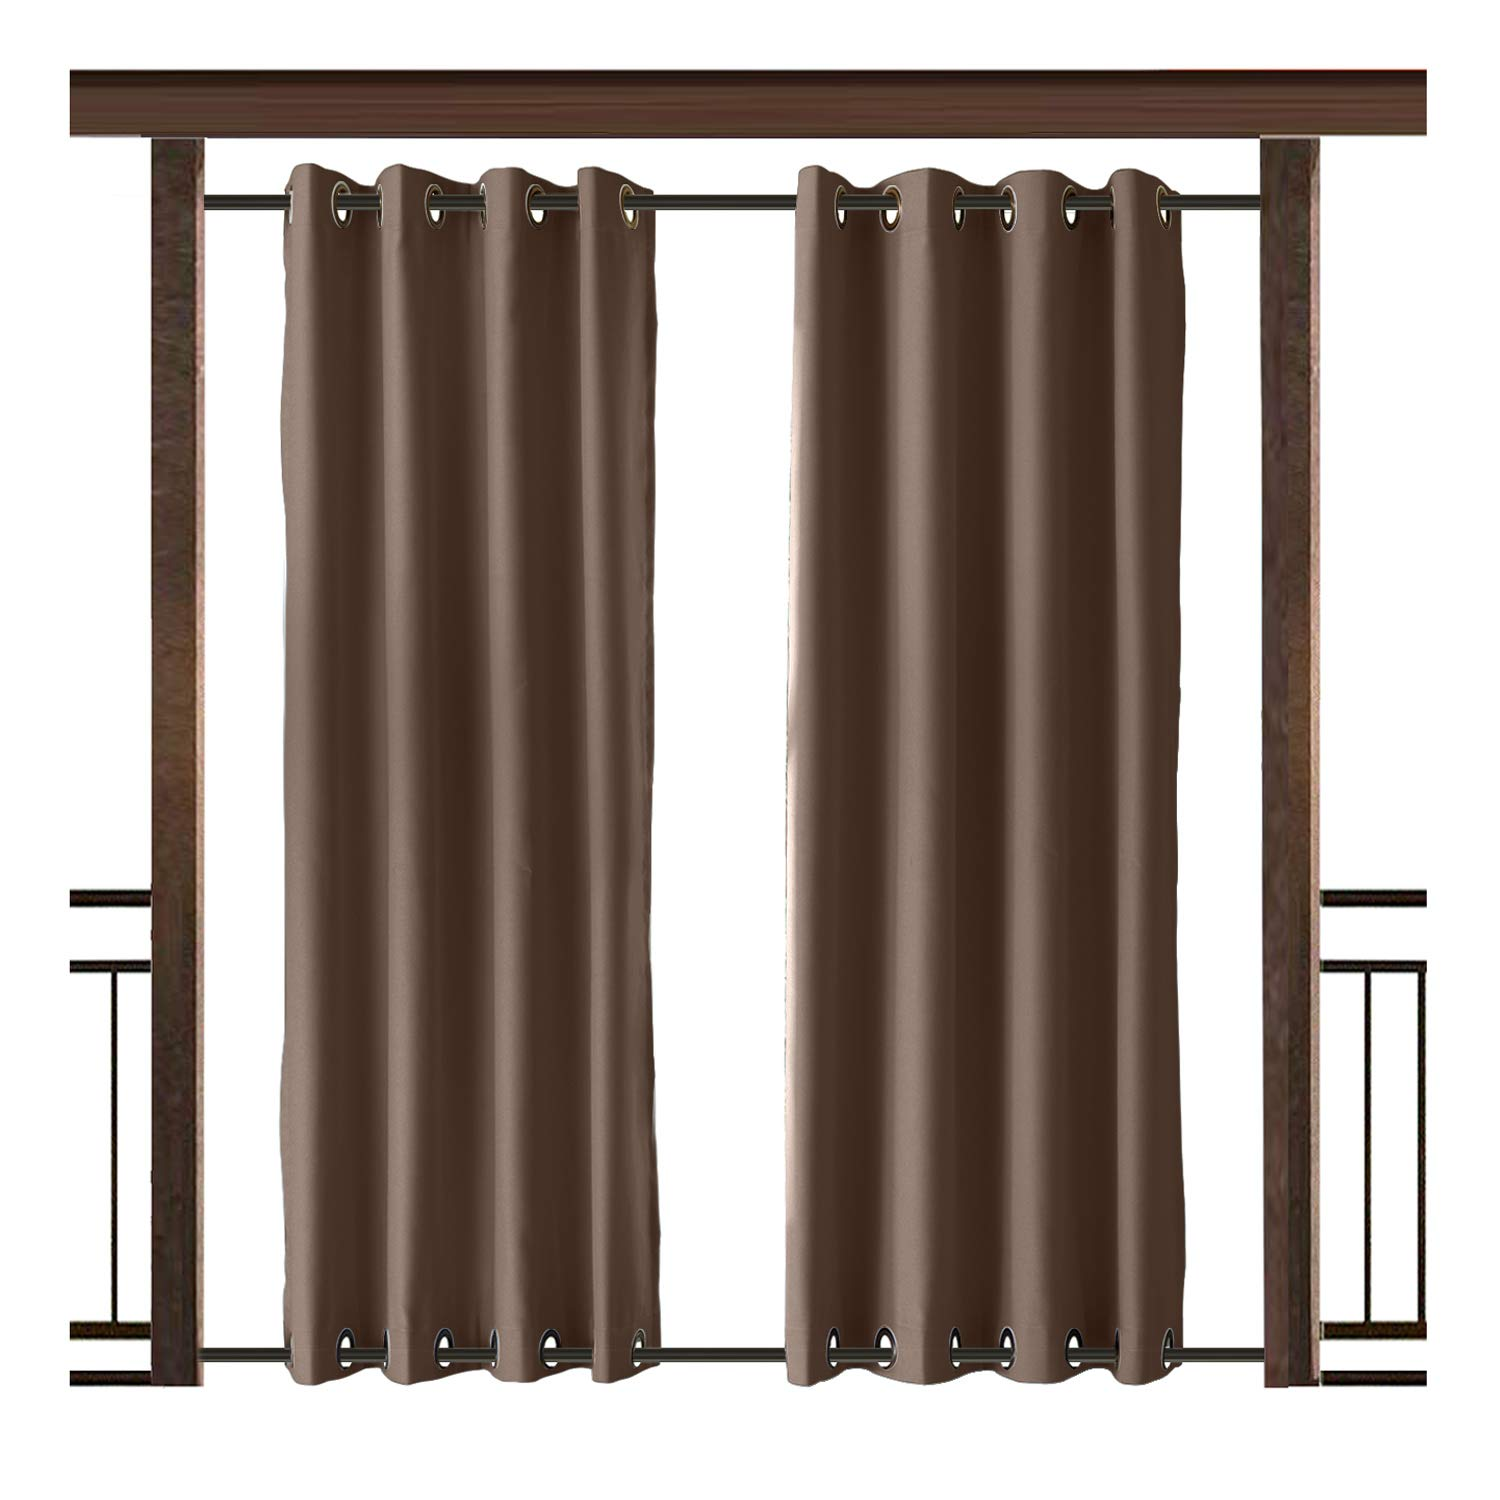 TWOPAGES Outdoor Curtain Antique Bronze Grommet Waterproof Drape(Both Top and Bottom) Chocolate 100'' W x 96'' L (1 Panel)